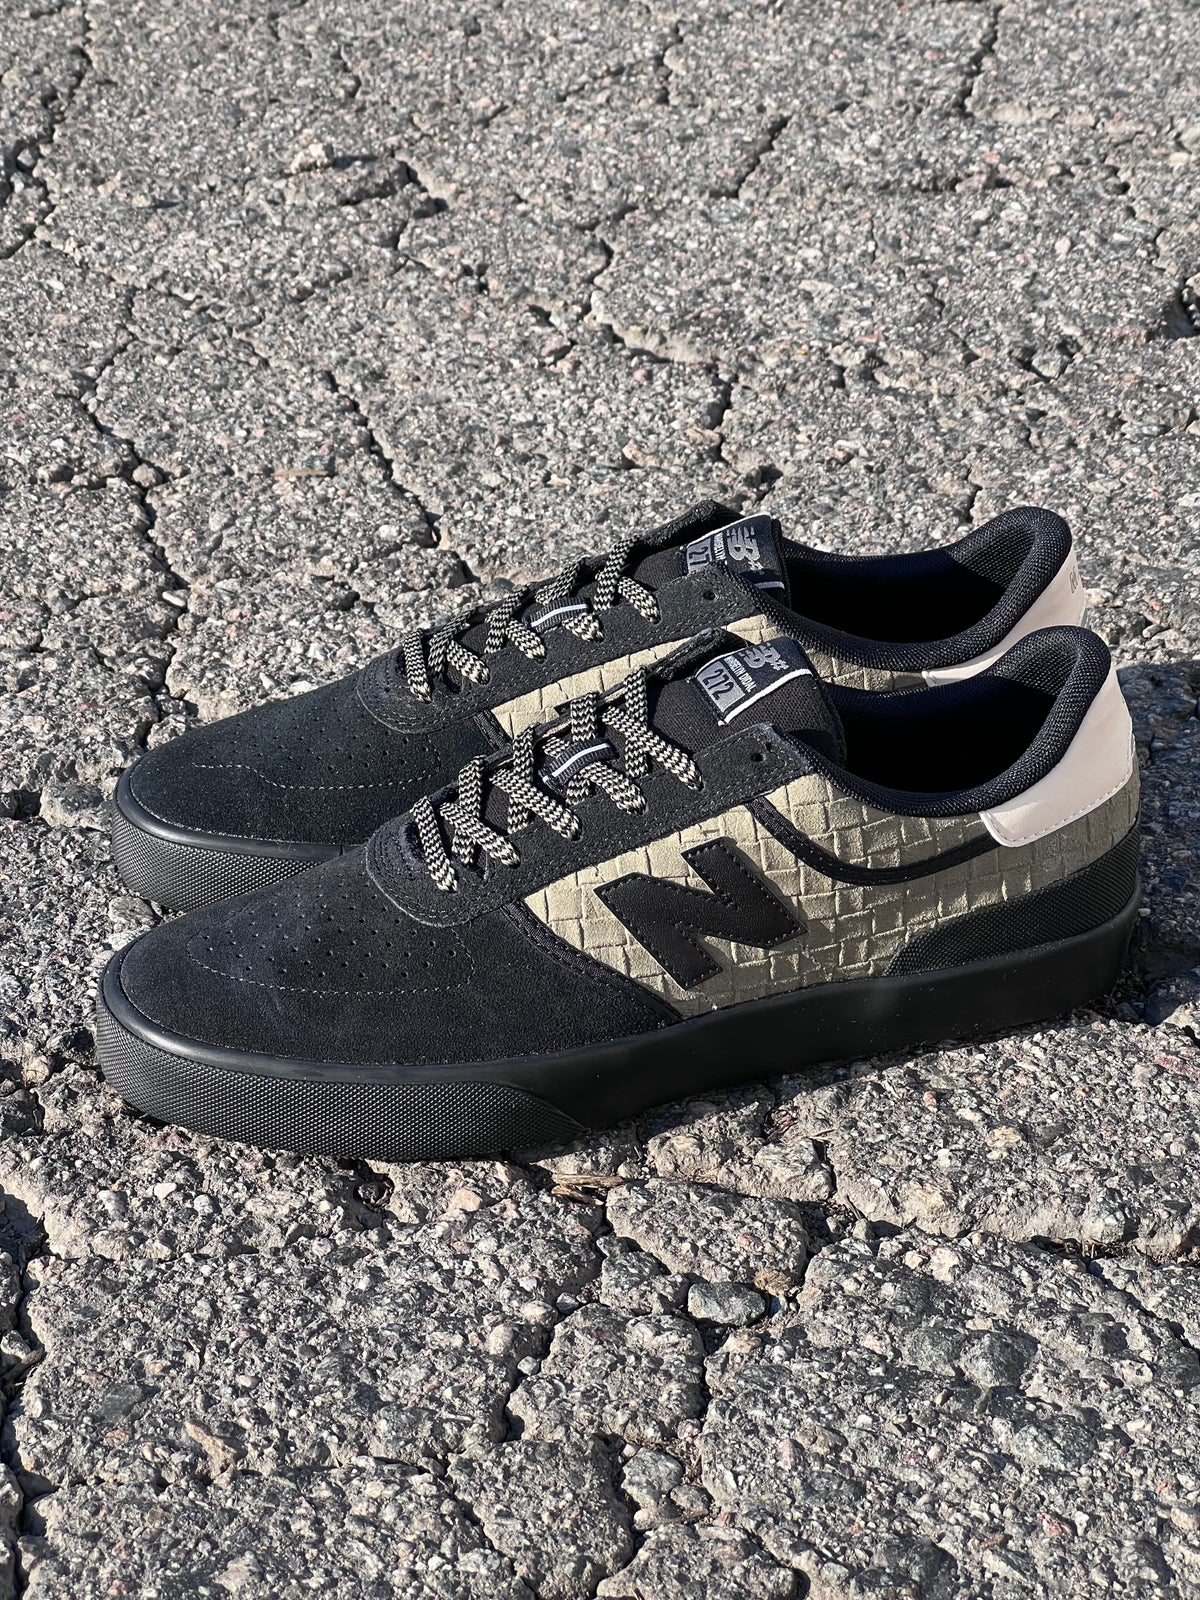 Image of New Balance Numeric NM272 -  MARGIELYN DIDAL